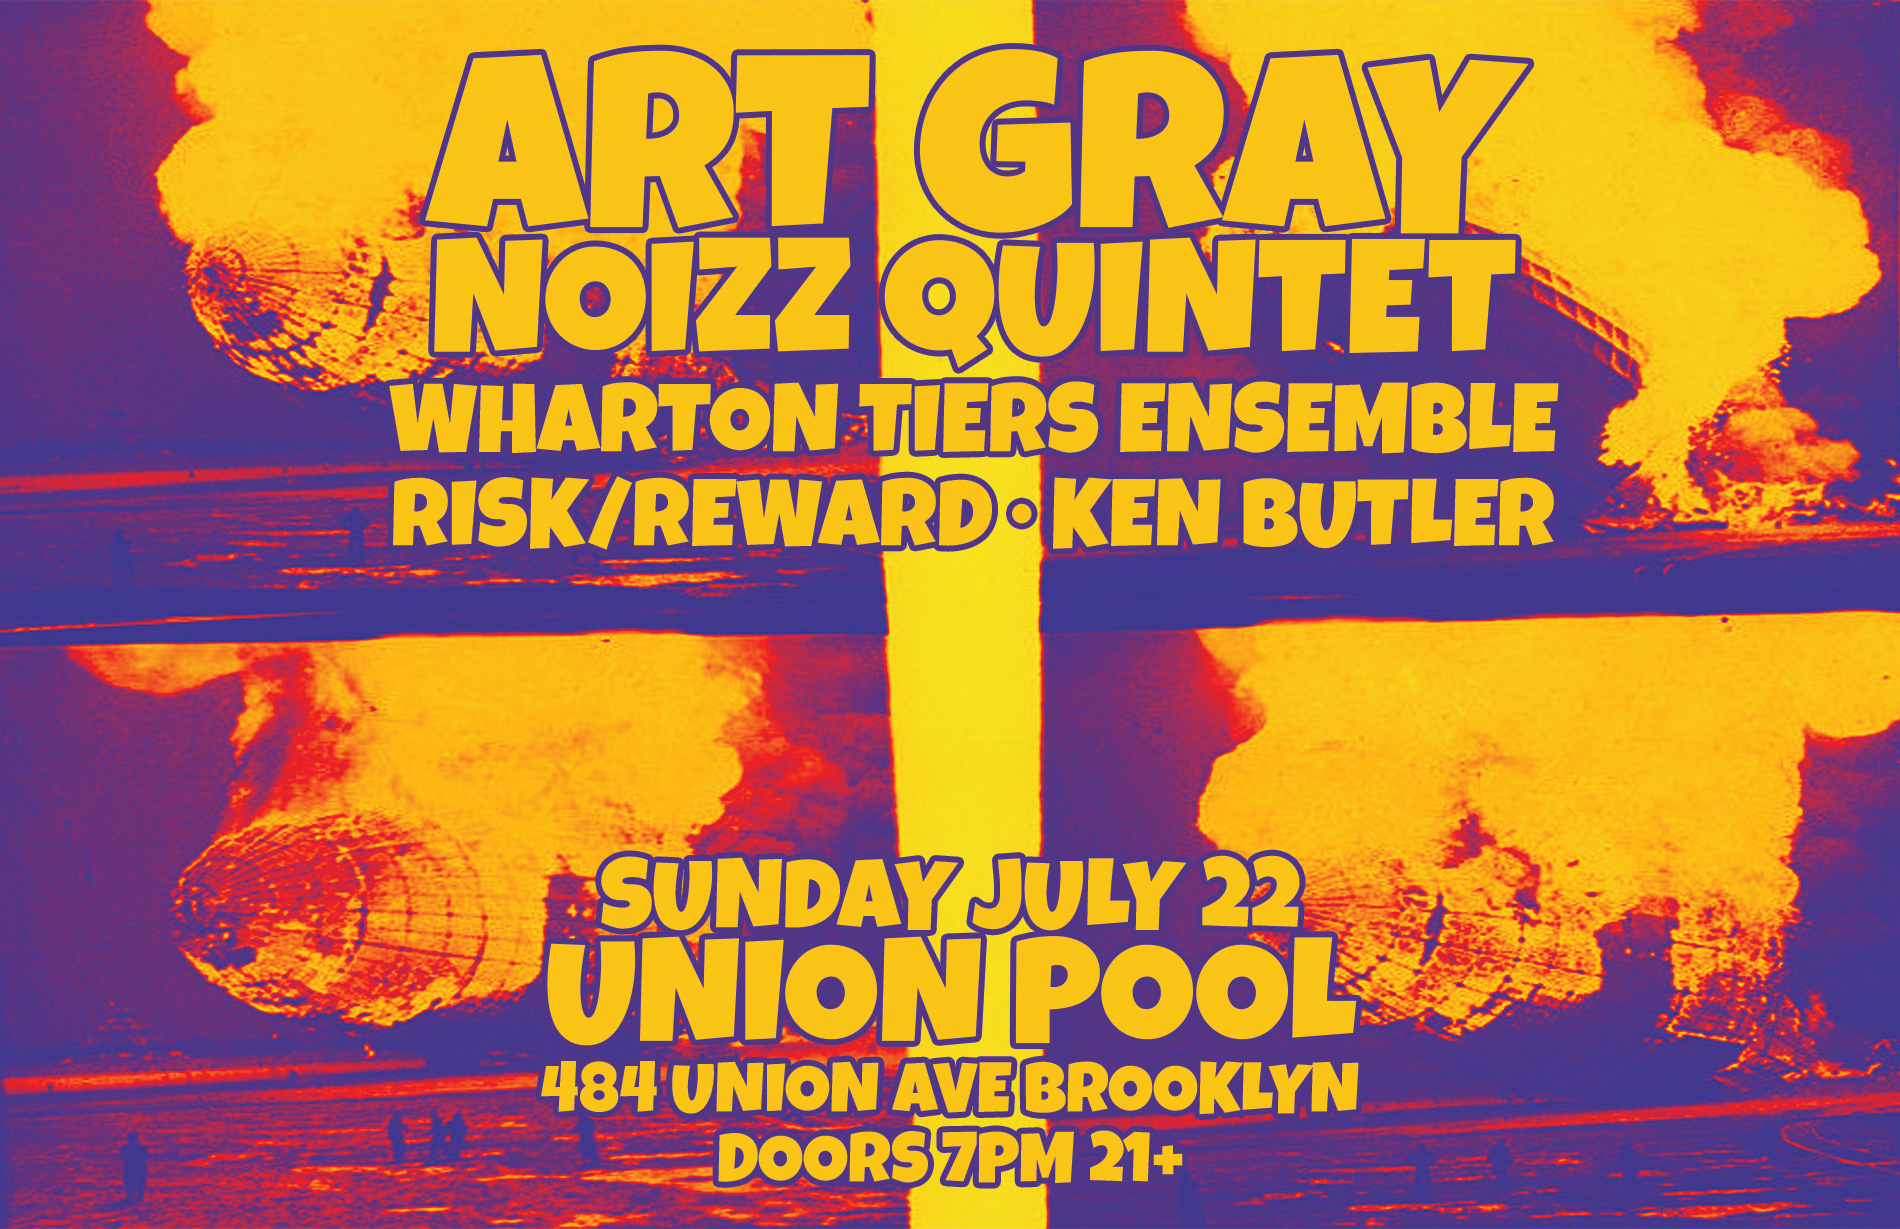 JUL 22 Art Gray Noizz Quintet * WTE * Risk/Reward * Ken Butler